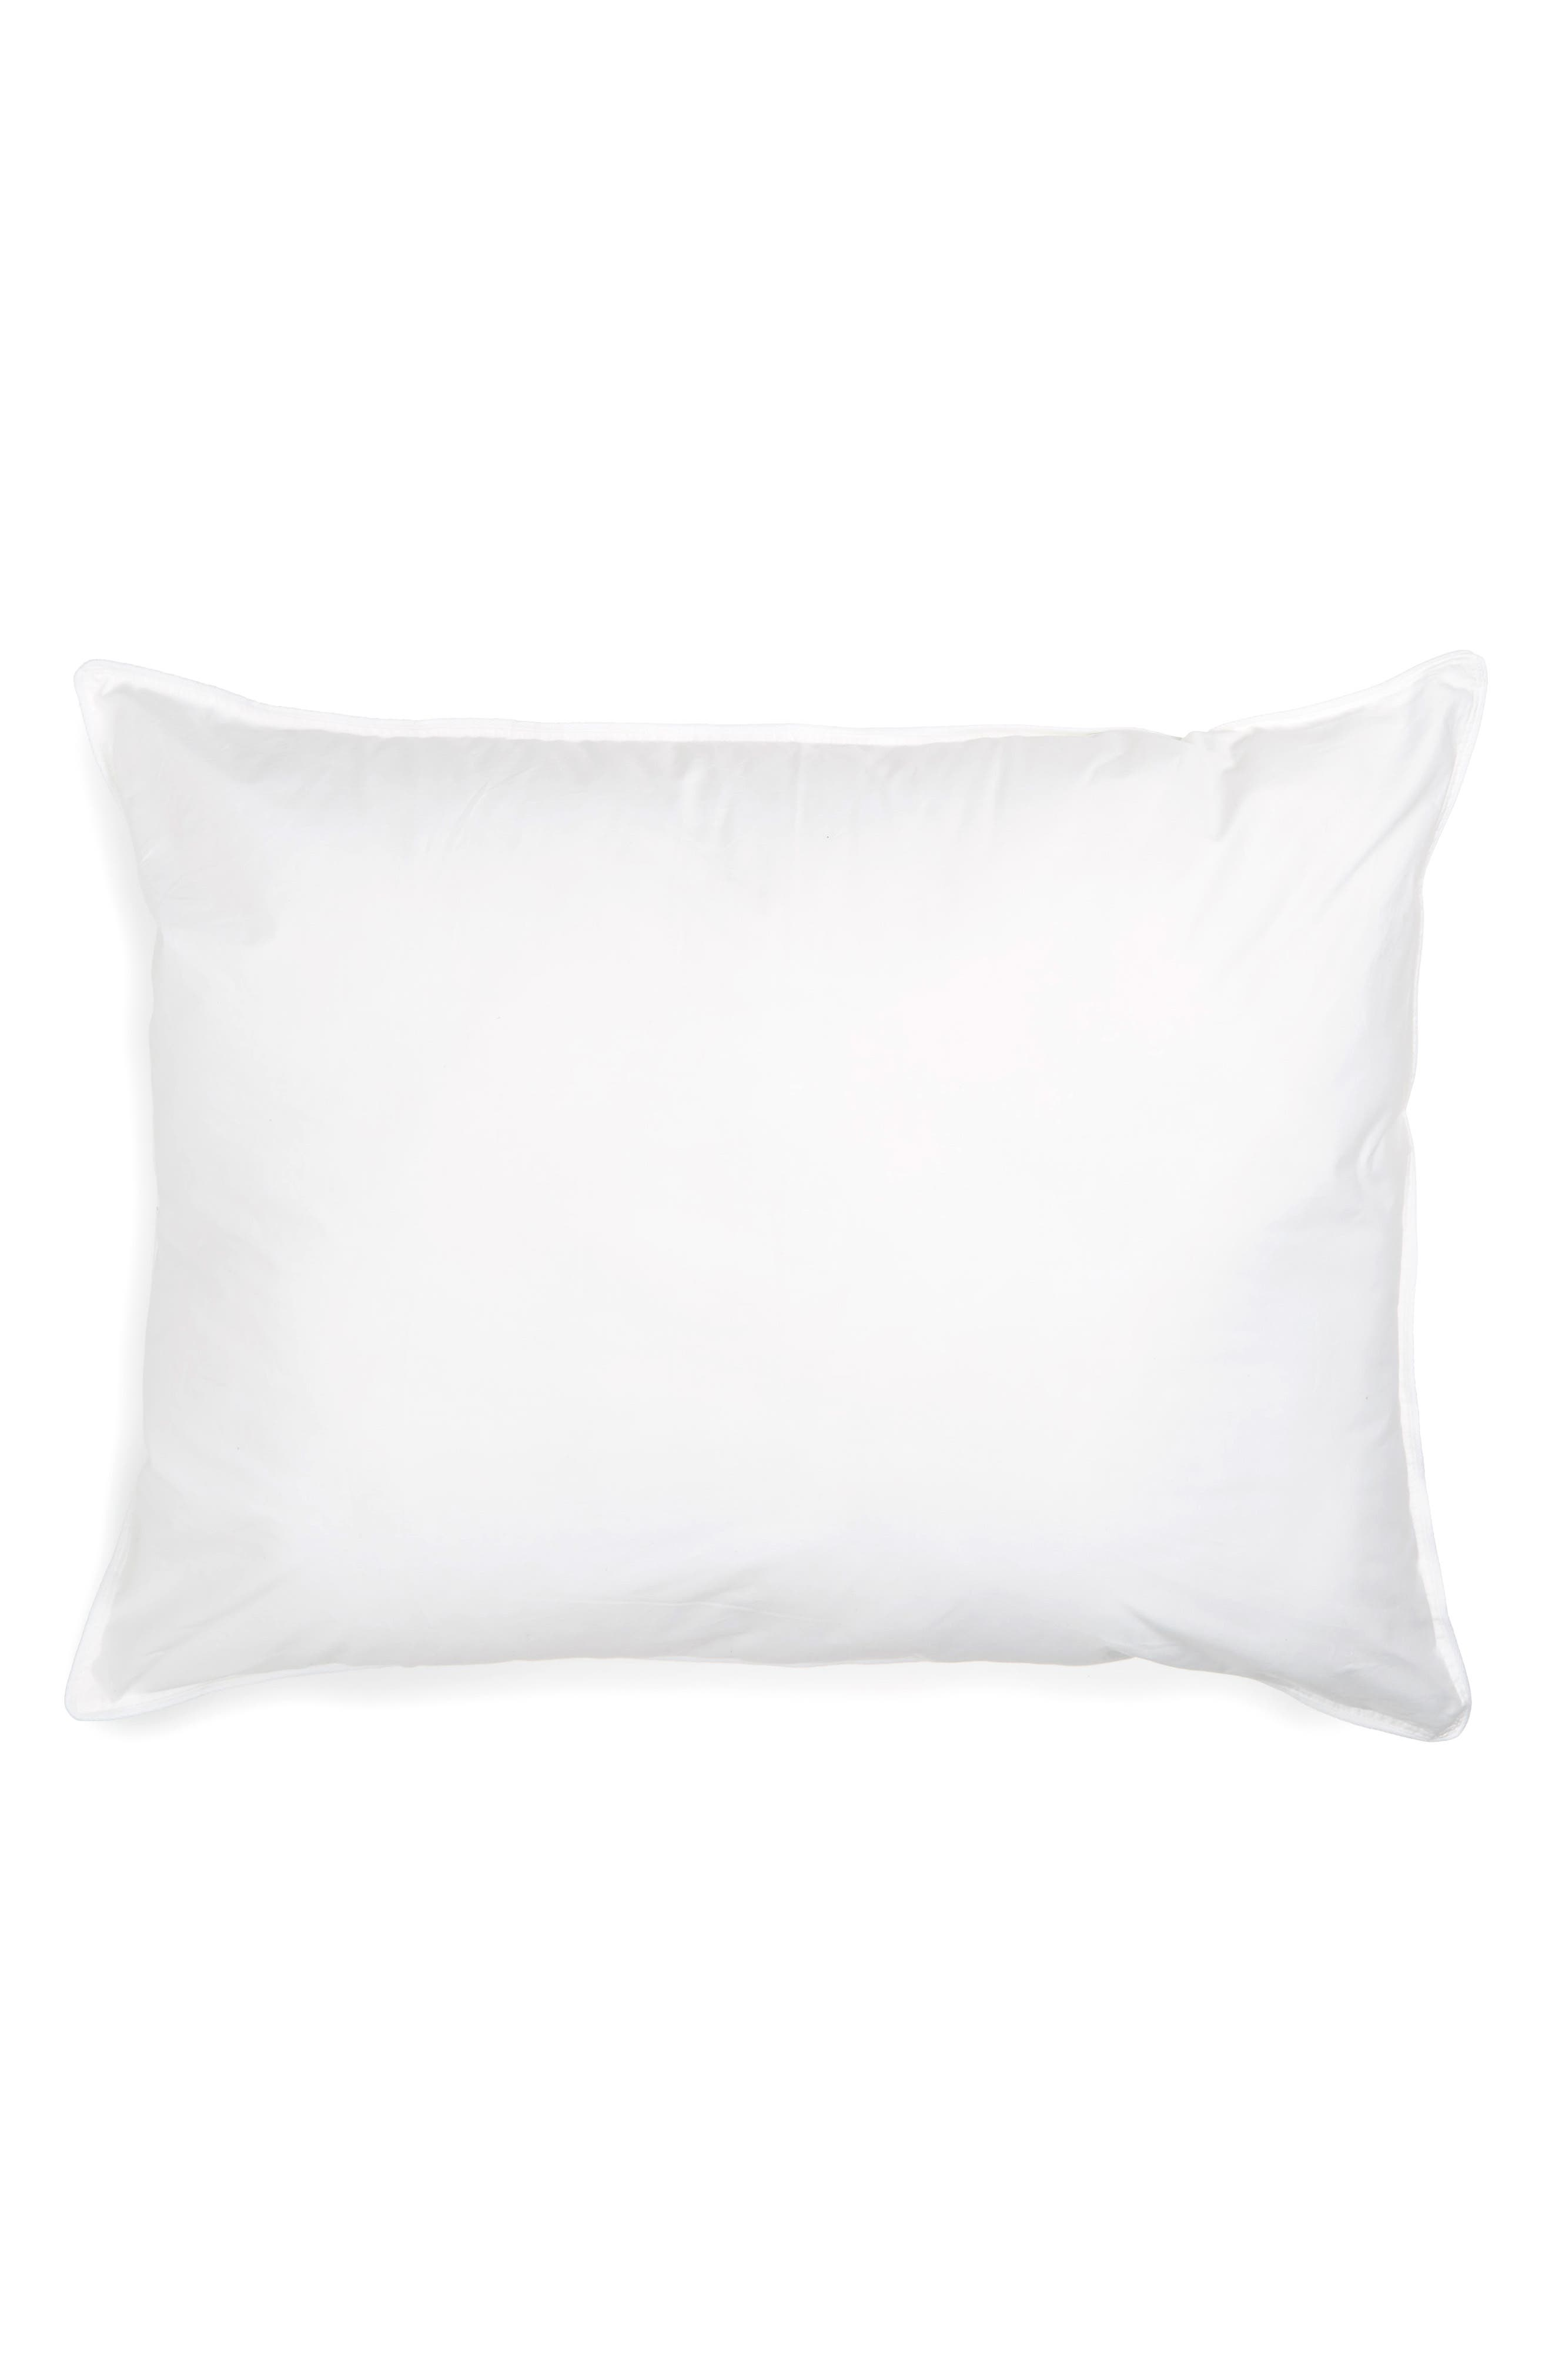 'Home Collection' Hypoallergenic Pillow,                         Main,                         color, WHI